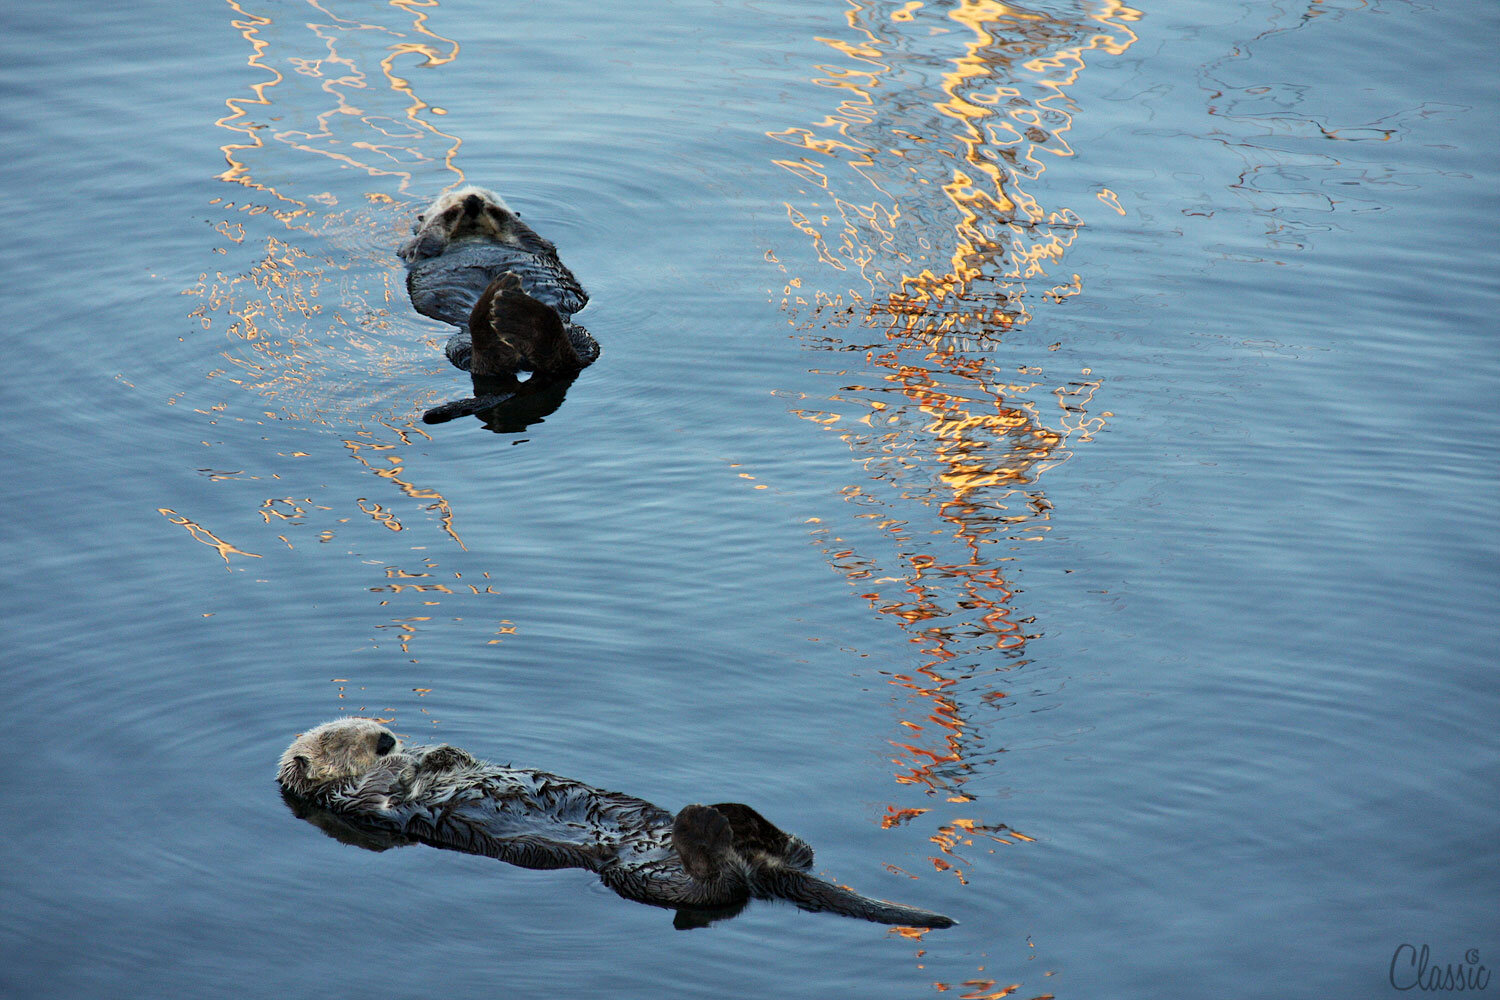 morro-bay-sea-otters-napping19-chiaristyle.jpg